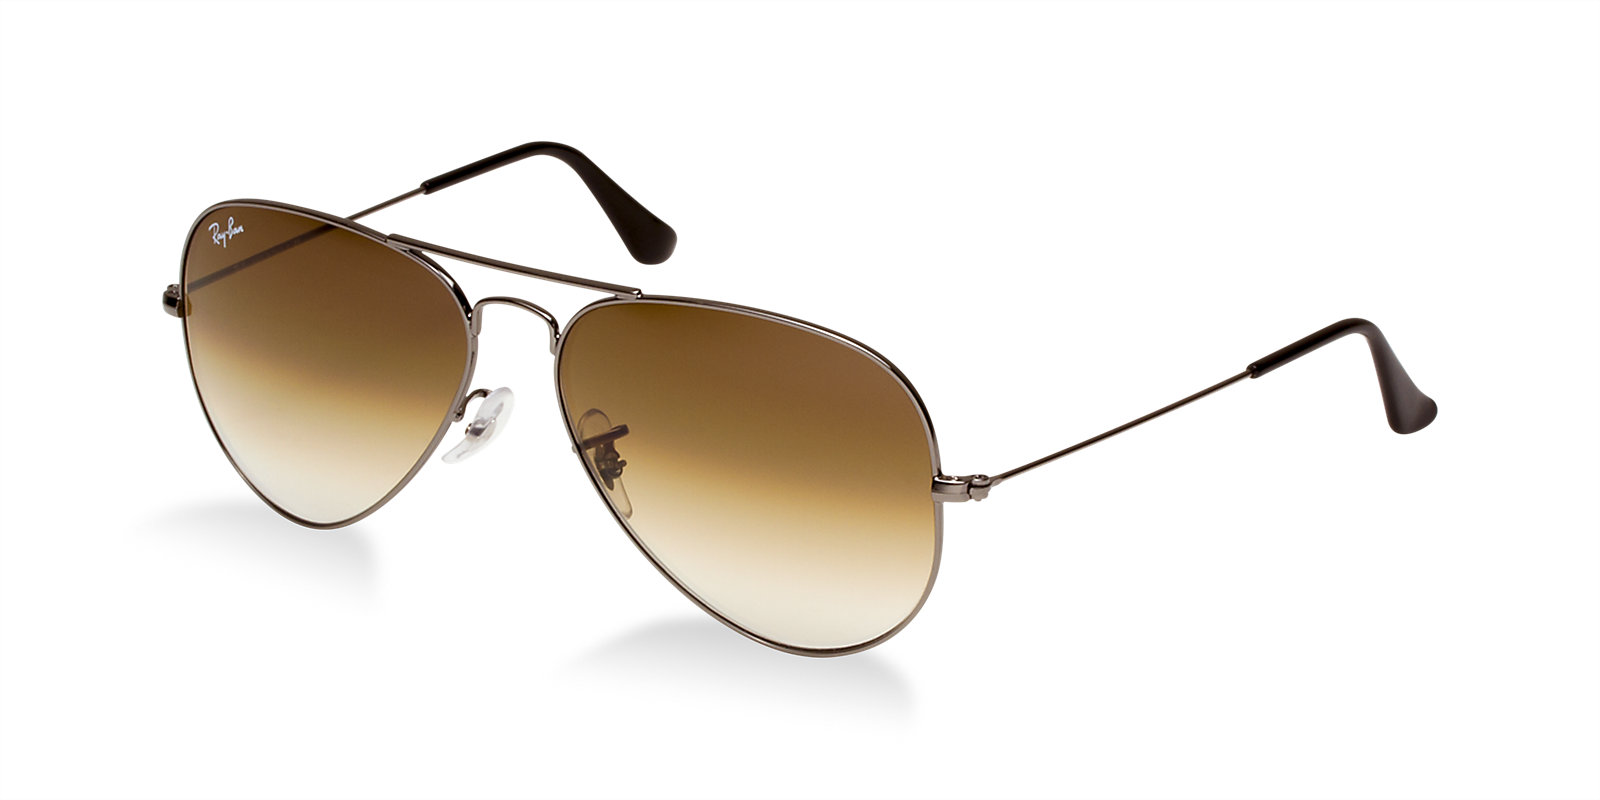 df5b3068e7 Previous  Next. Previous  Next. RAY-BAN RB3025 004 51 GUNMETAL BROWN  AVIATOR SUNGLASSES